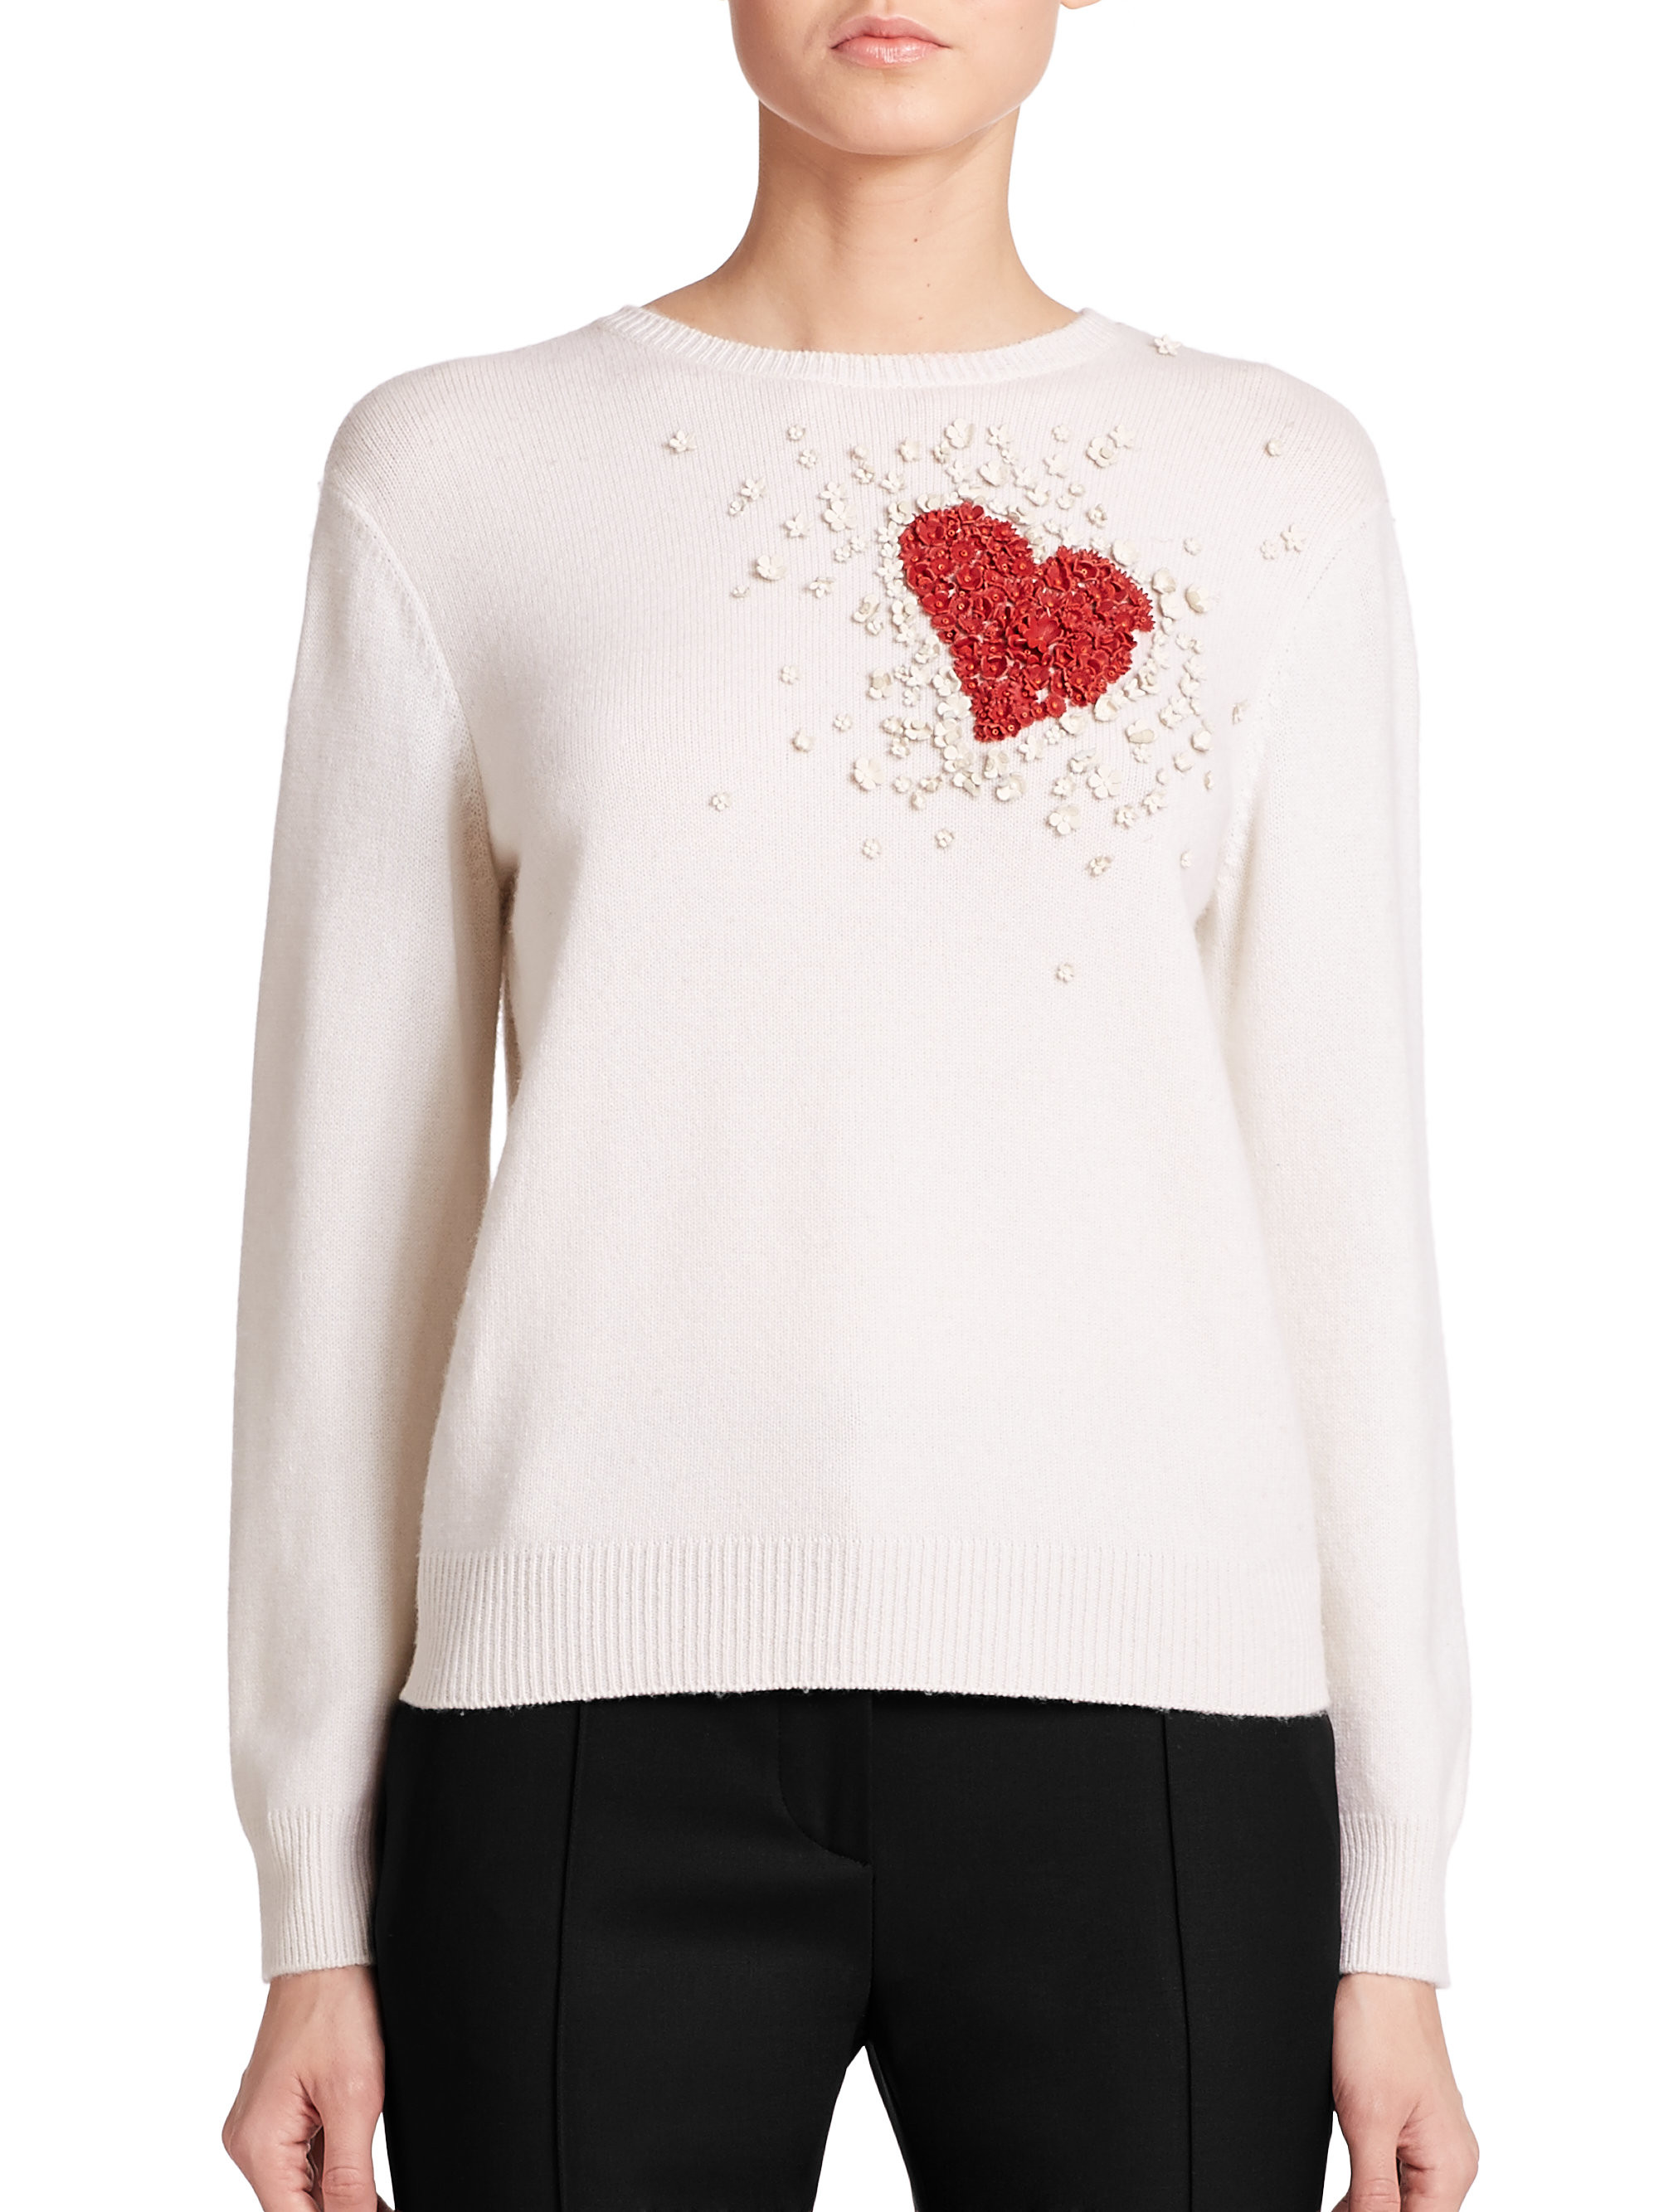 Beautiful Valentino Beaded Cashmere Heart Sweater In White Red Heart Sweater Of Lovely 32 Ideas Red Heart Sweater